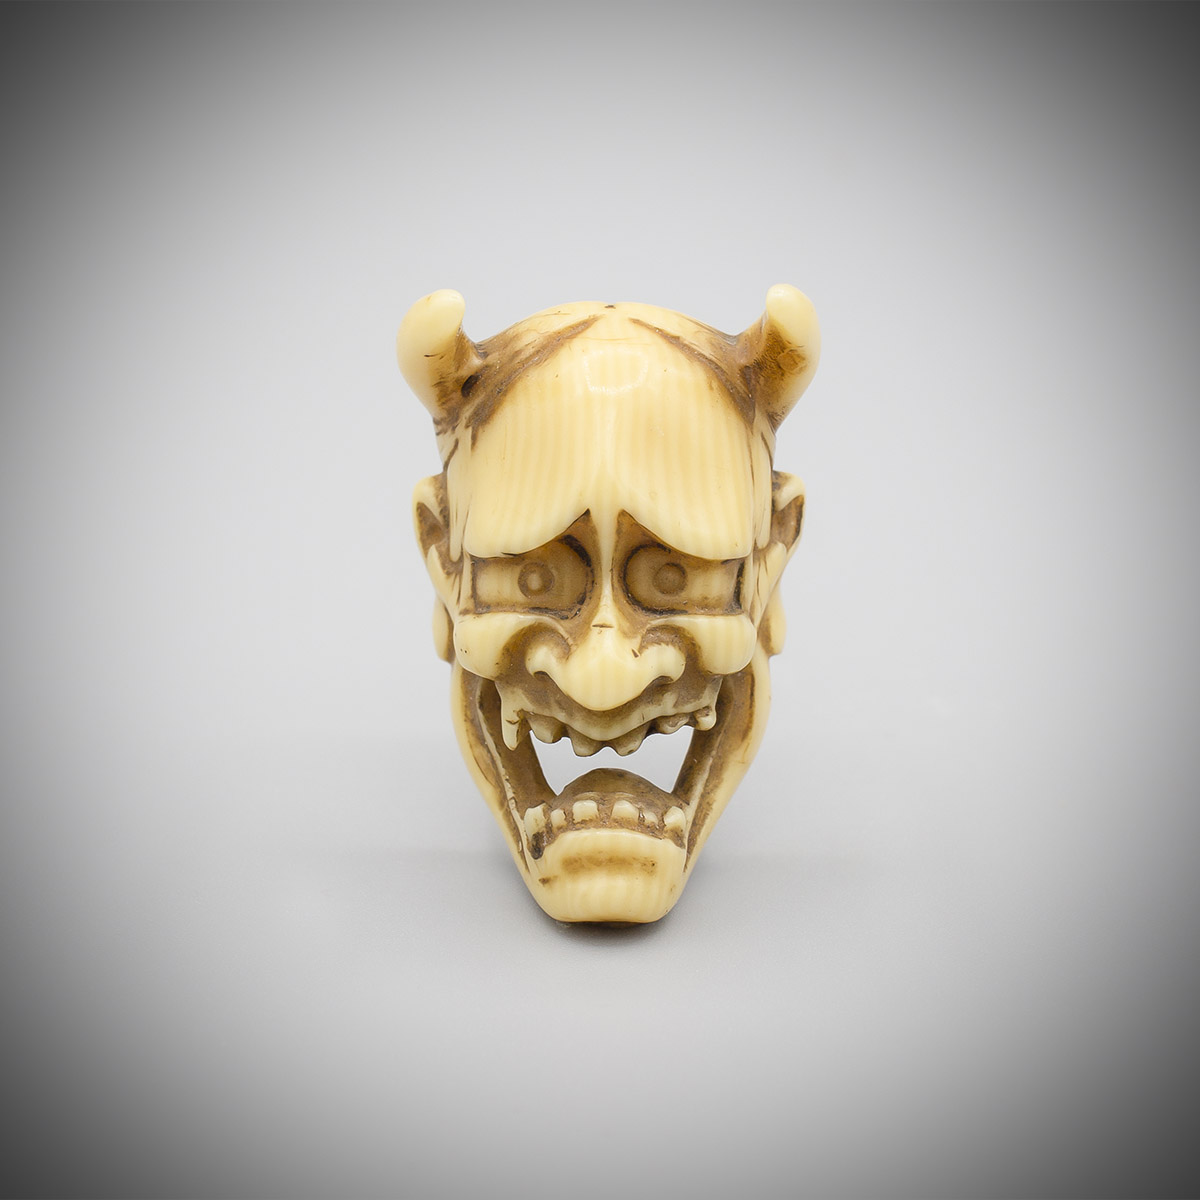 Small ivory mask netsuke of Hannya, MR3398_v.1-2